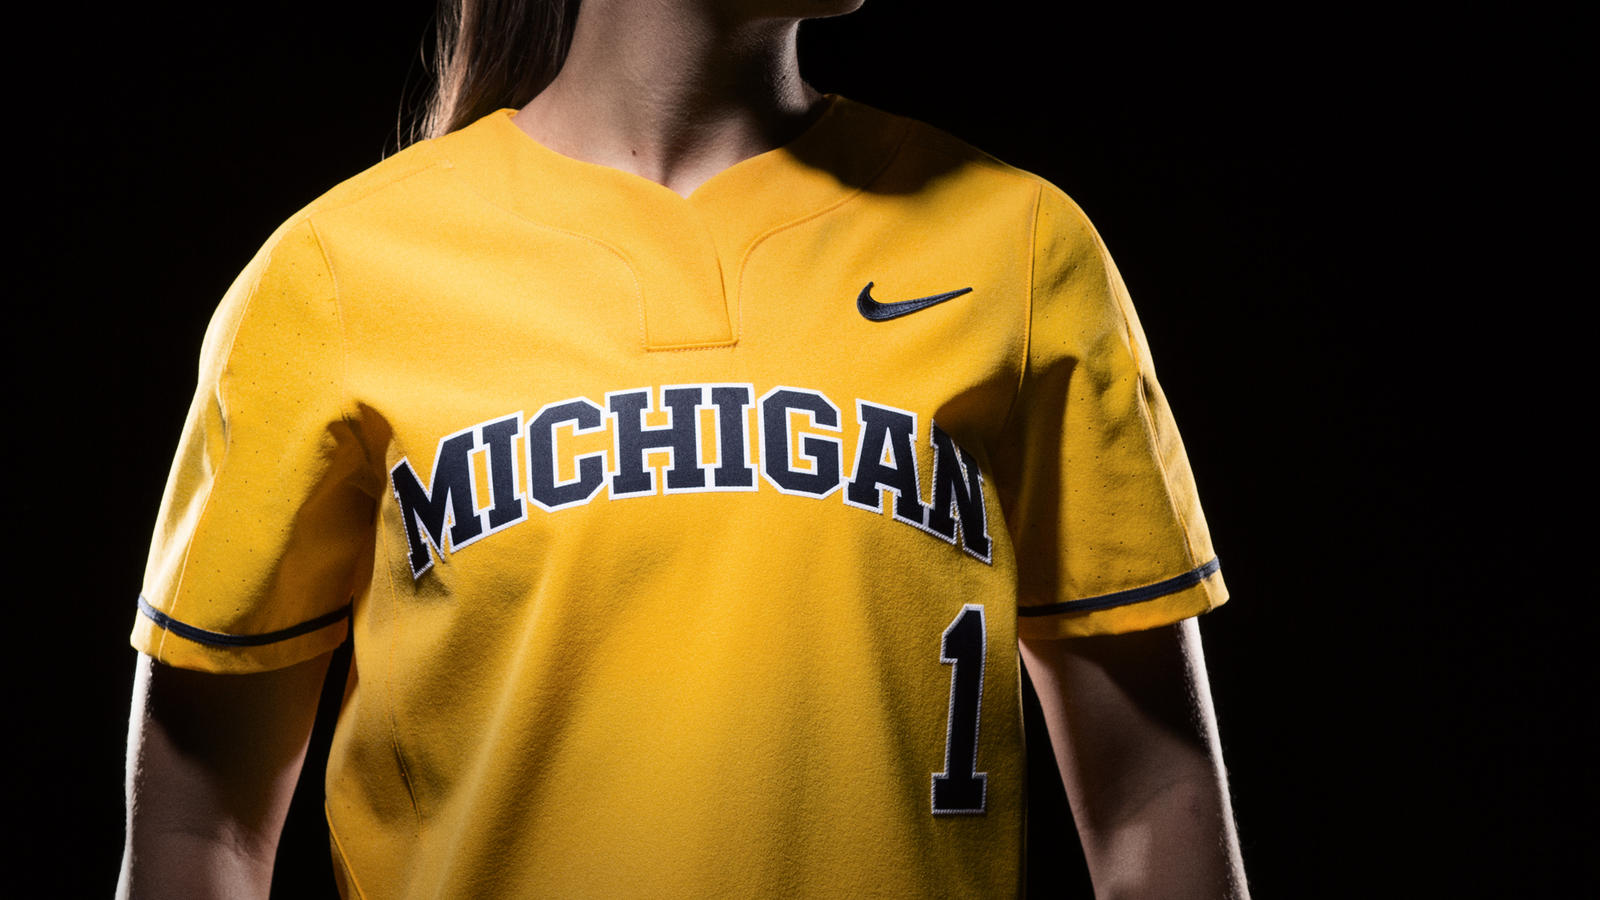 Michigan softball3